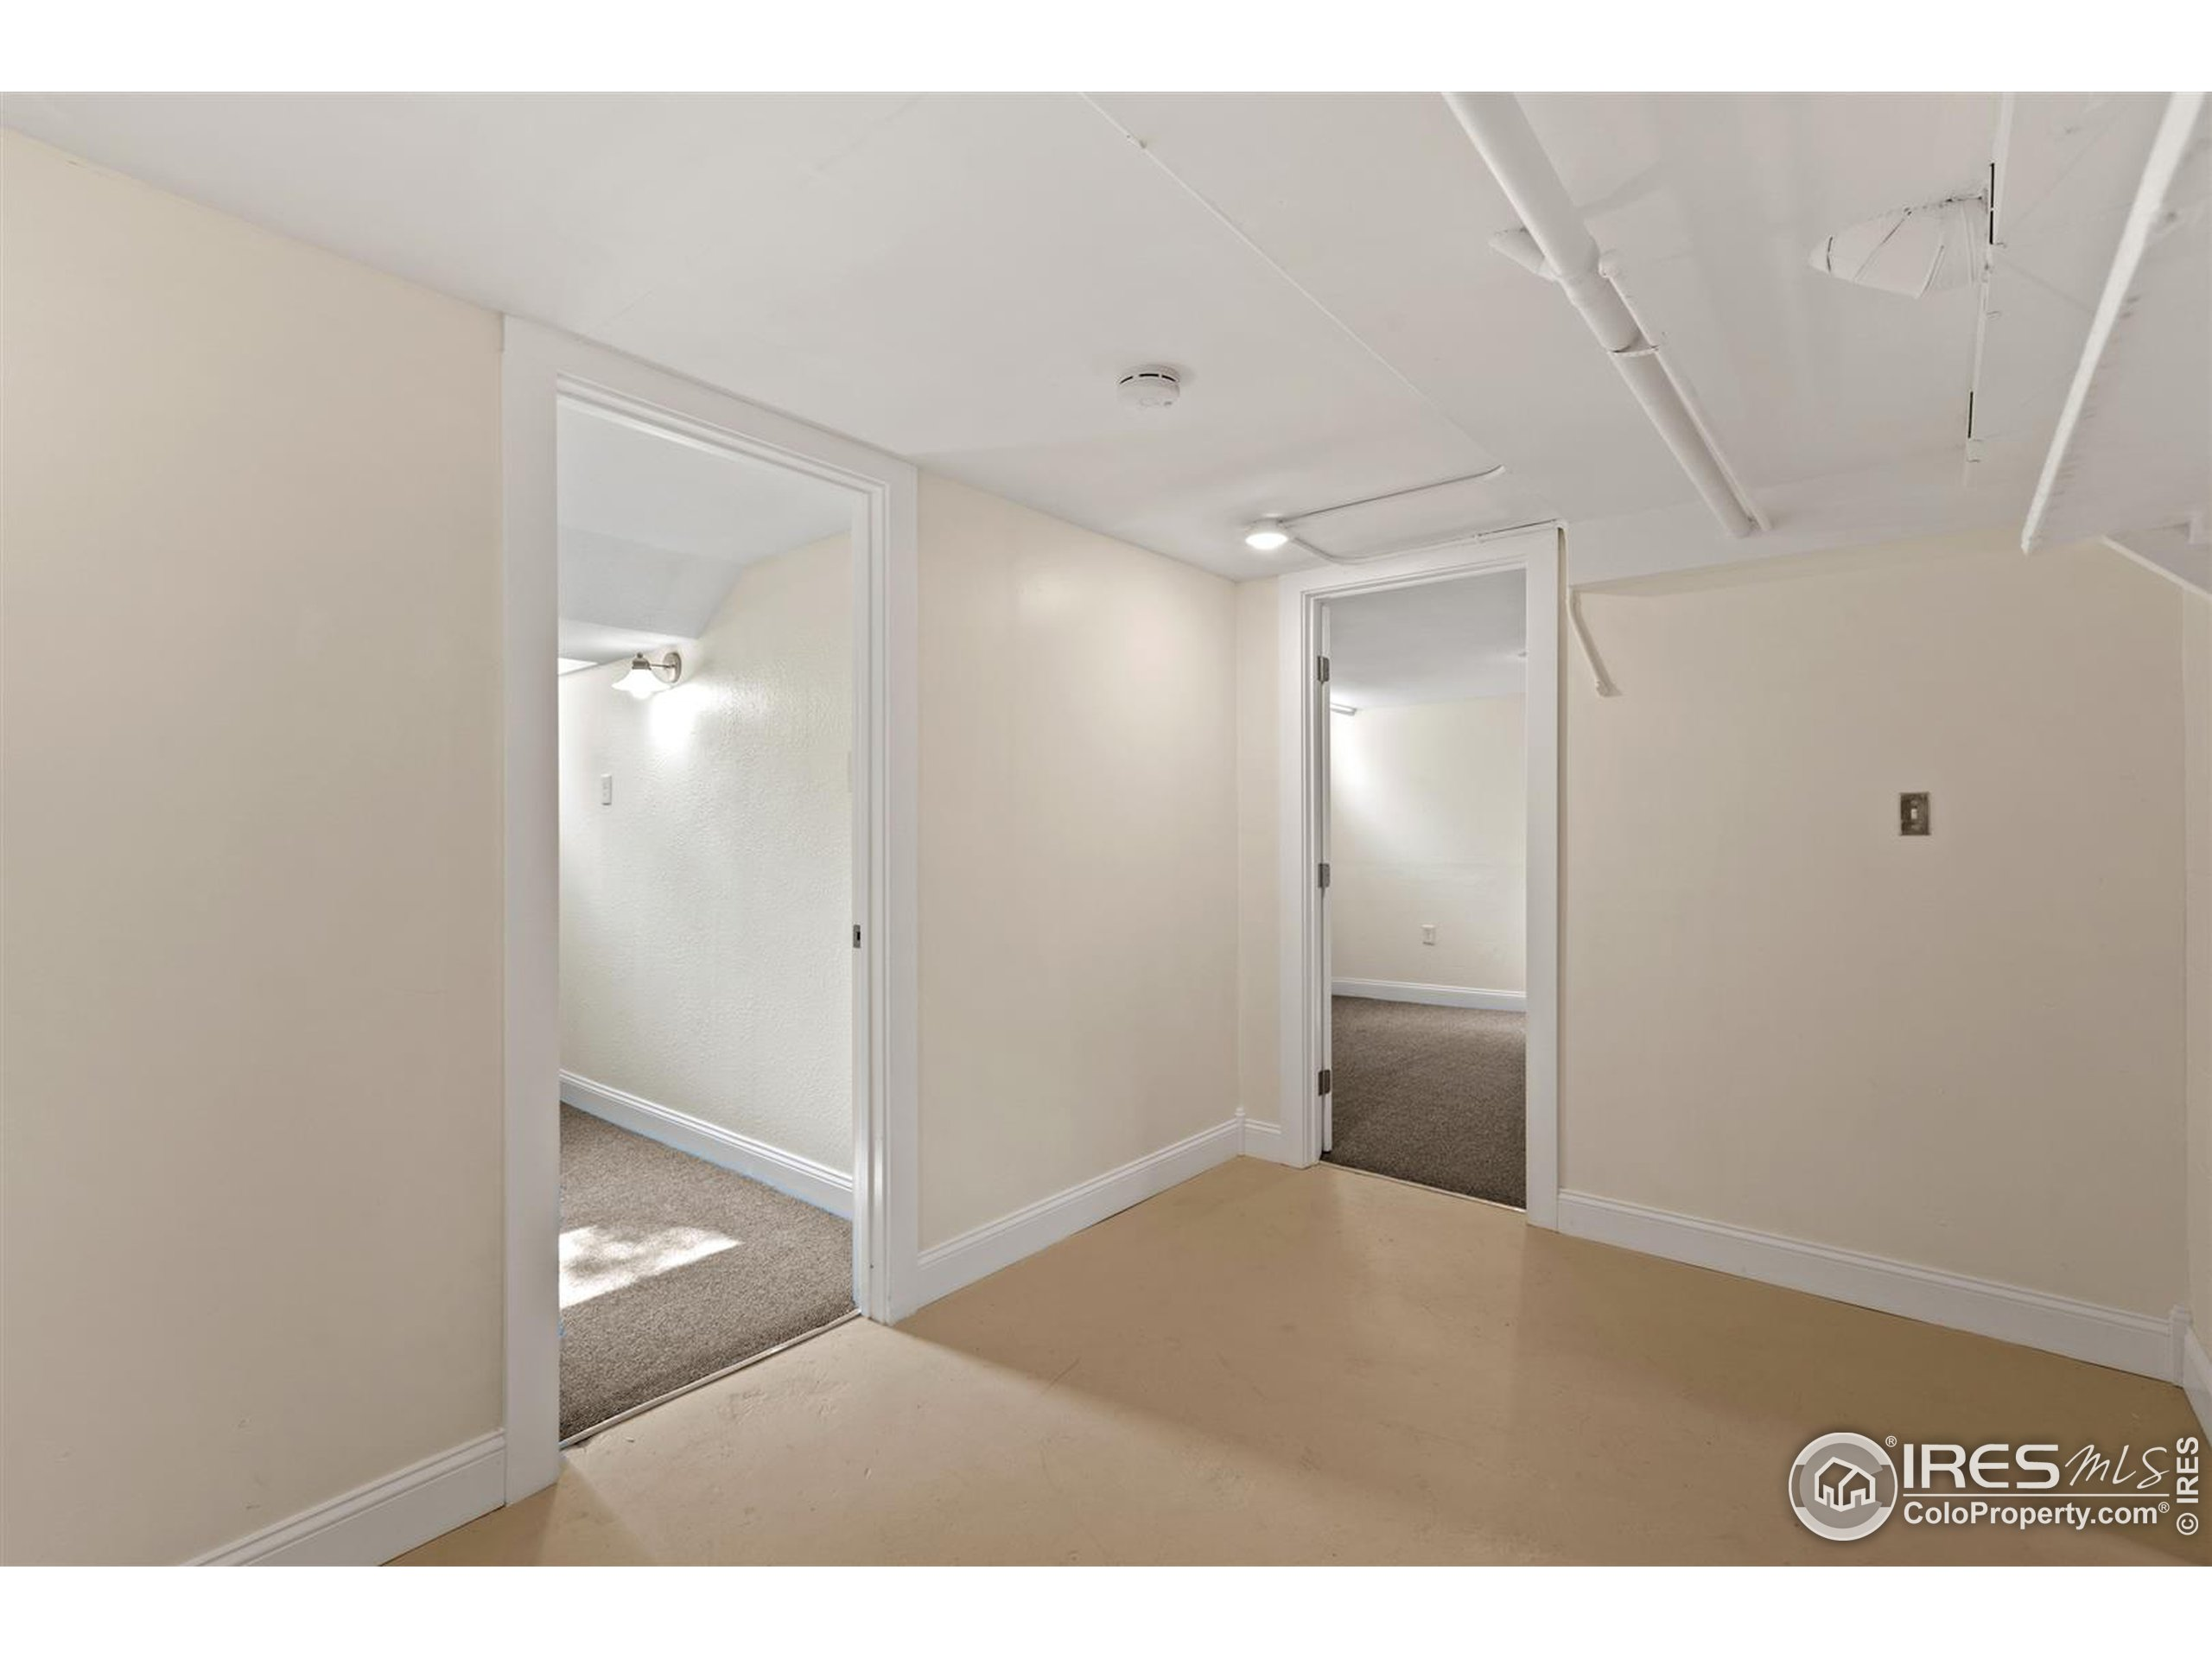 HUGE laundry room with space for a future bathroom